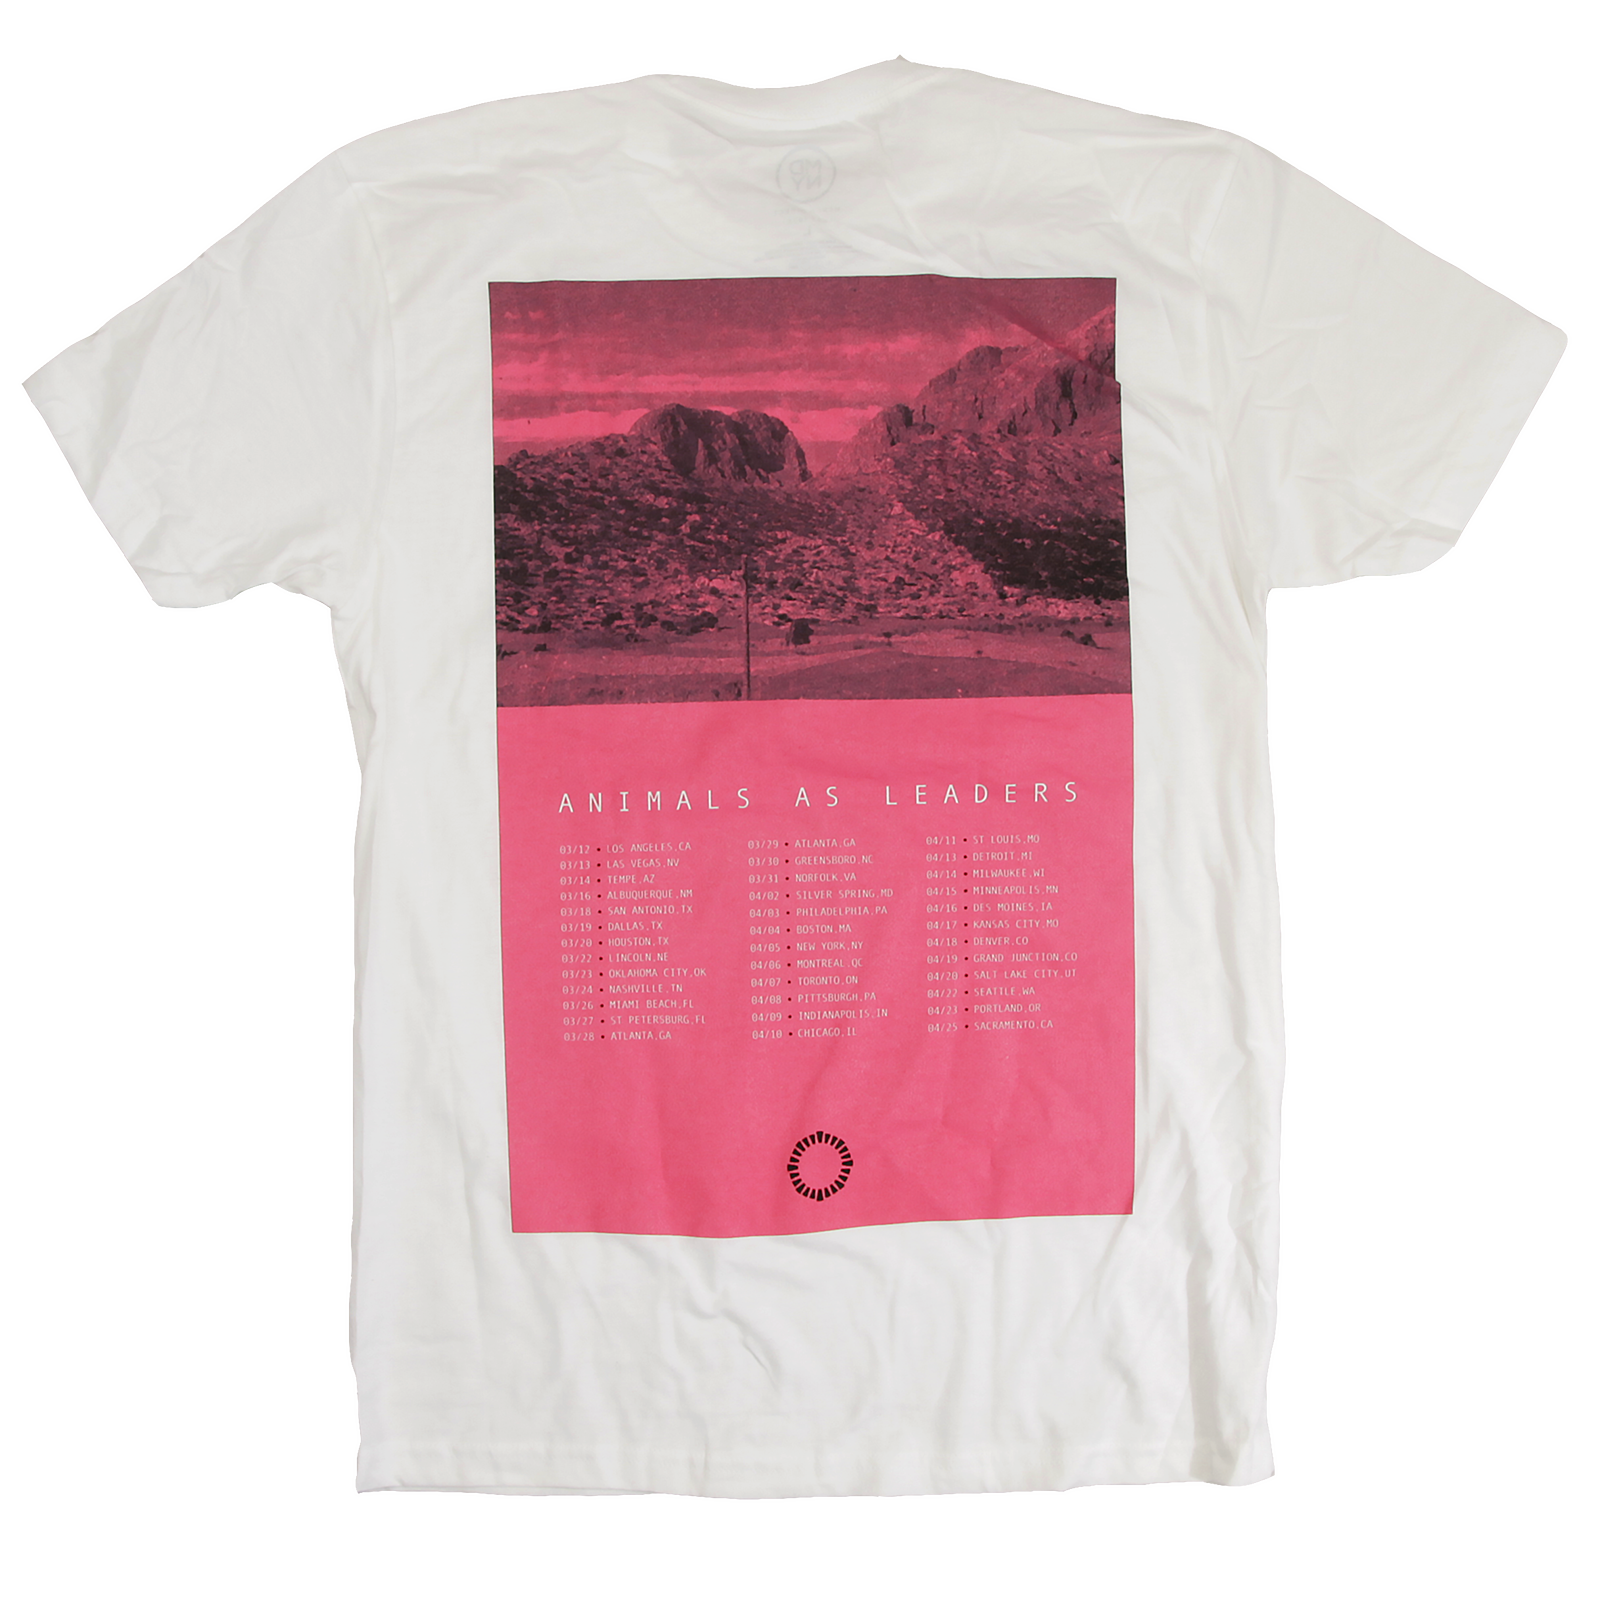 Cancelled Tour Date Back Tee - White